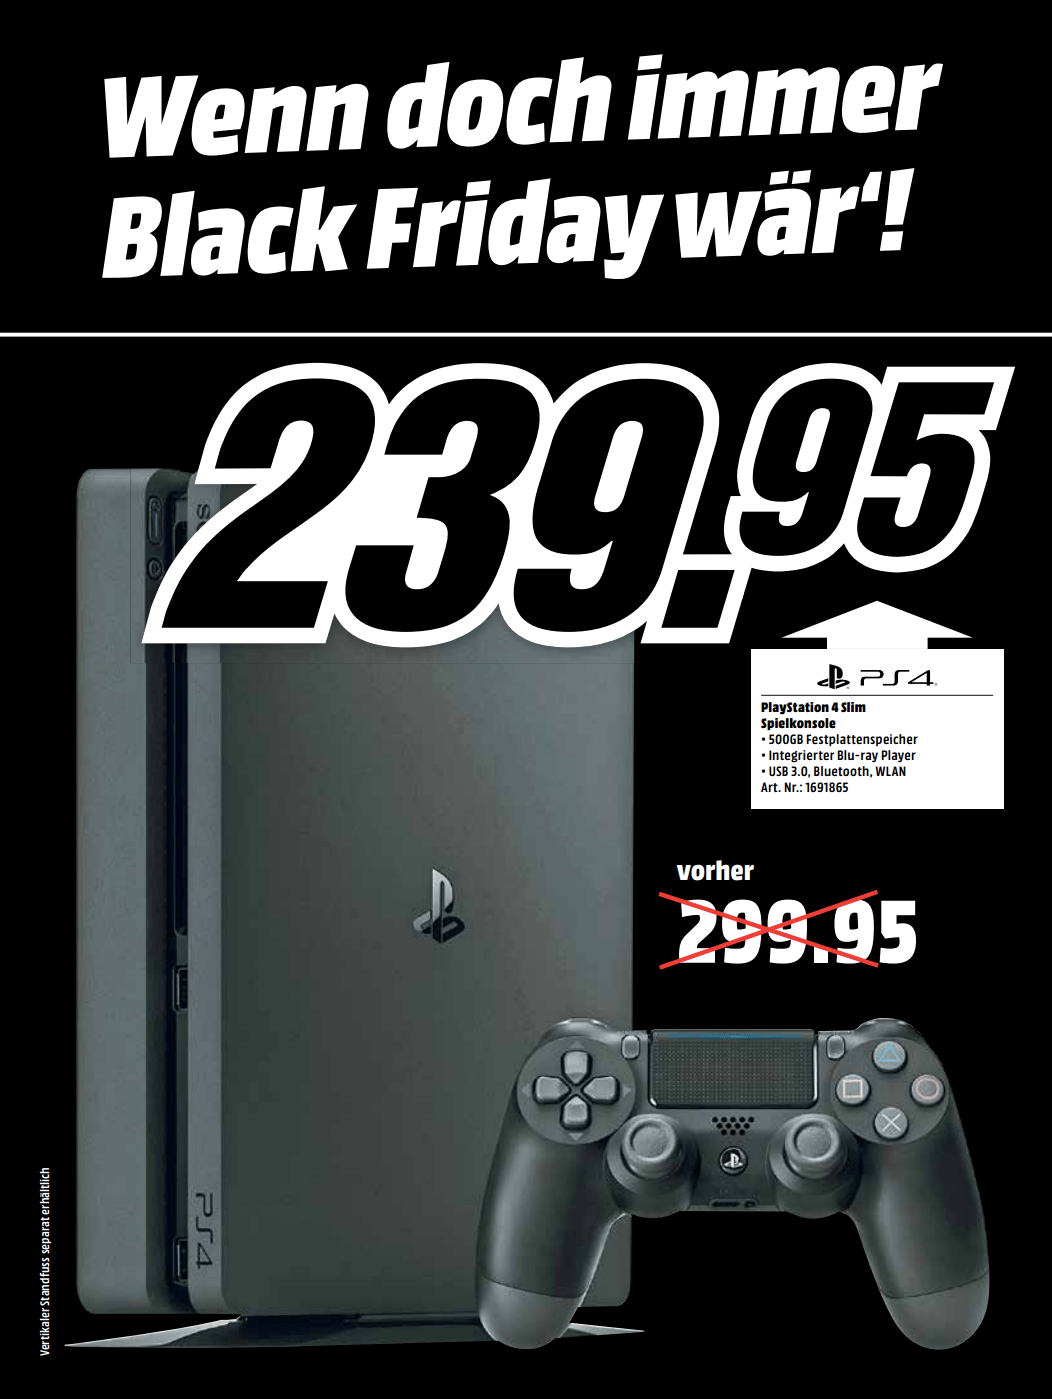 Black Friday Wann Alle Mediamarkt Black Friday Und Cyber Monday Deals In Der